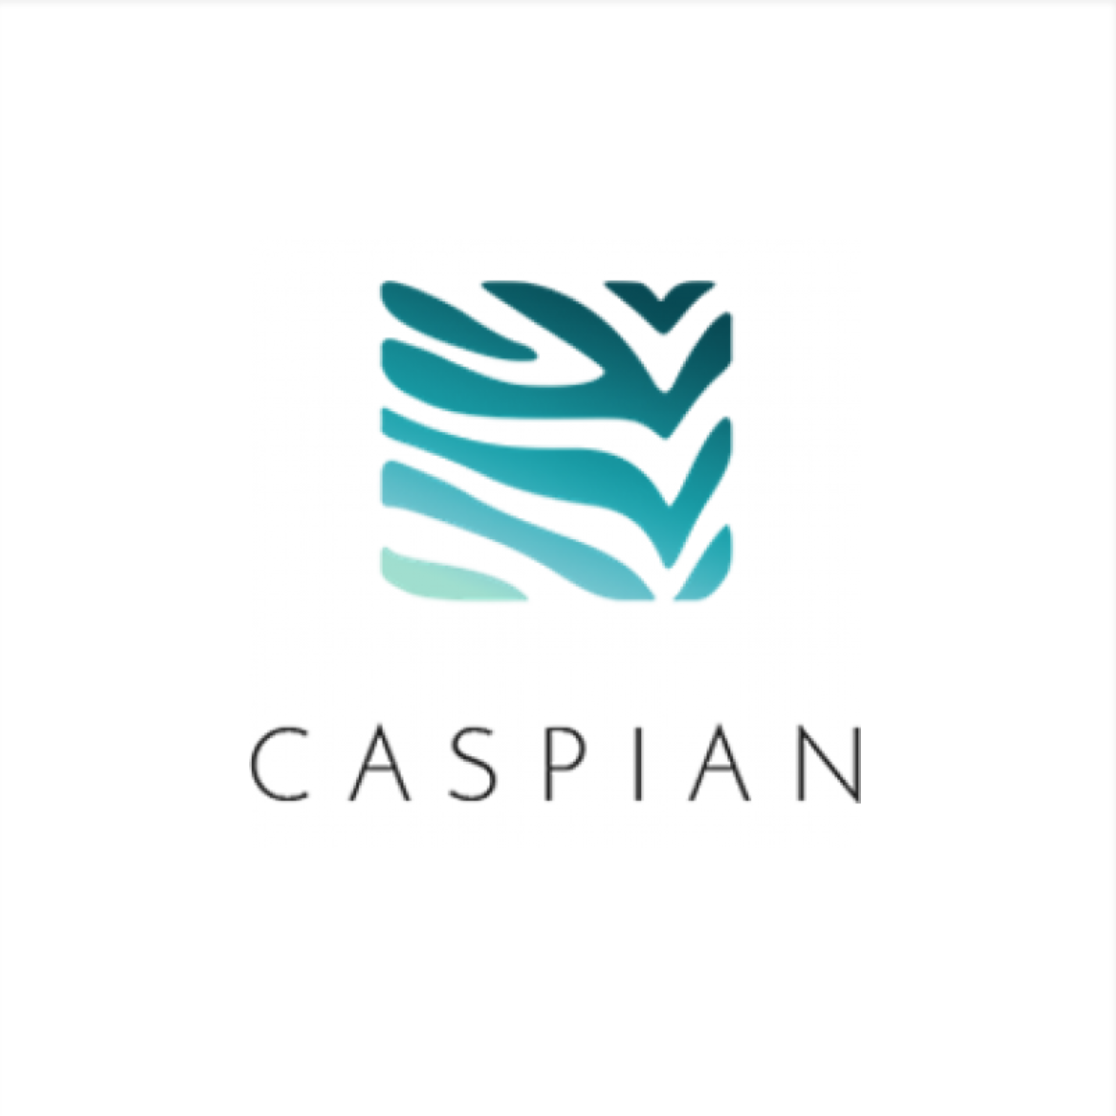 Caspian Partners with Gemini to Increase Crypto Exchange